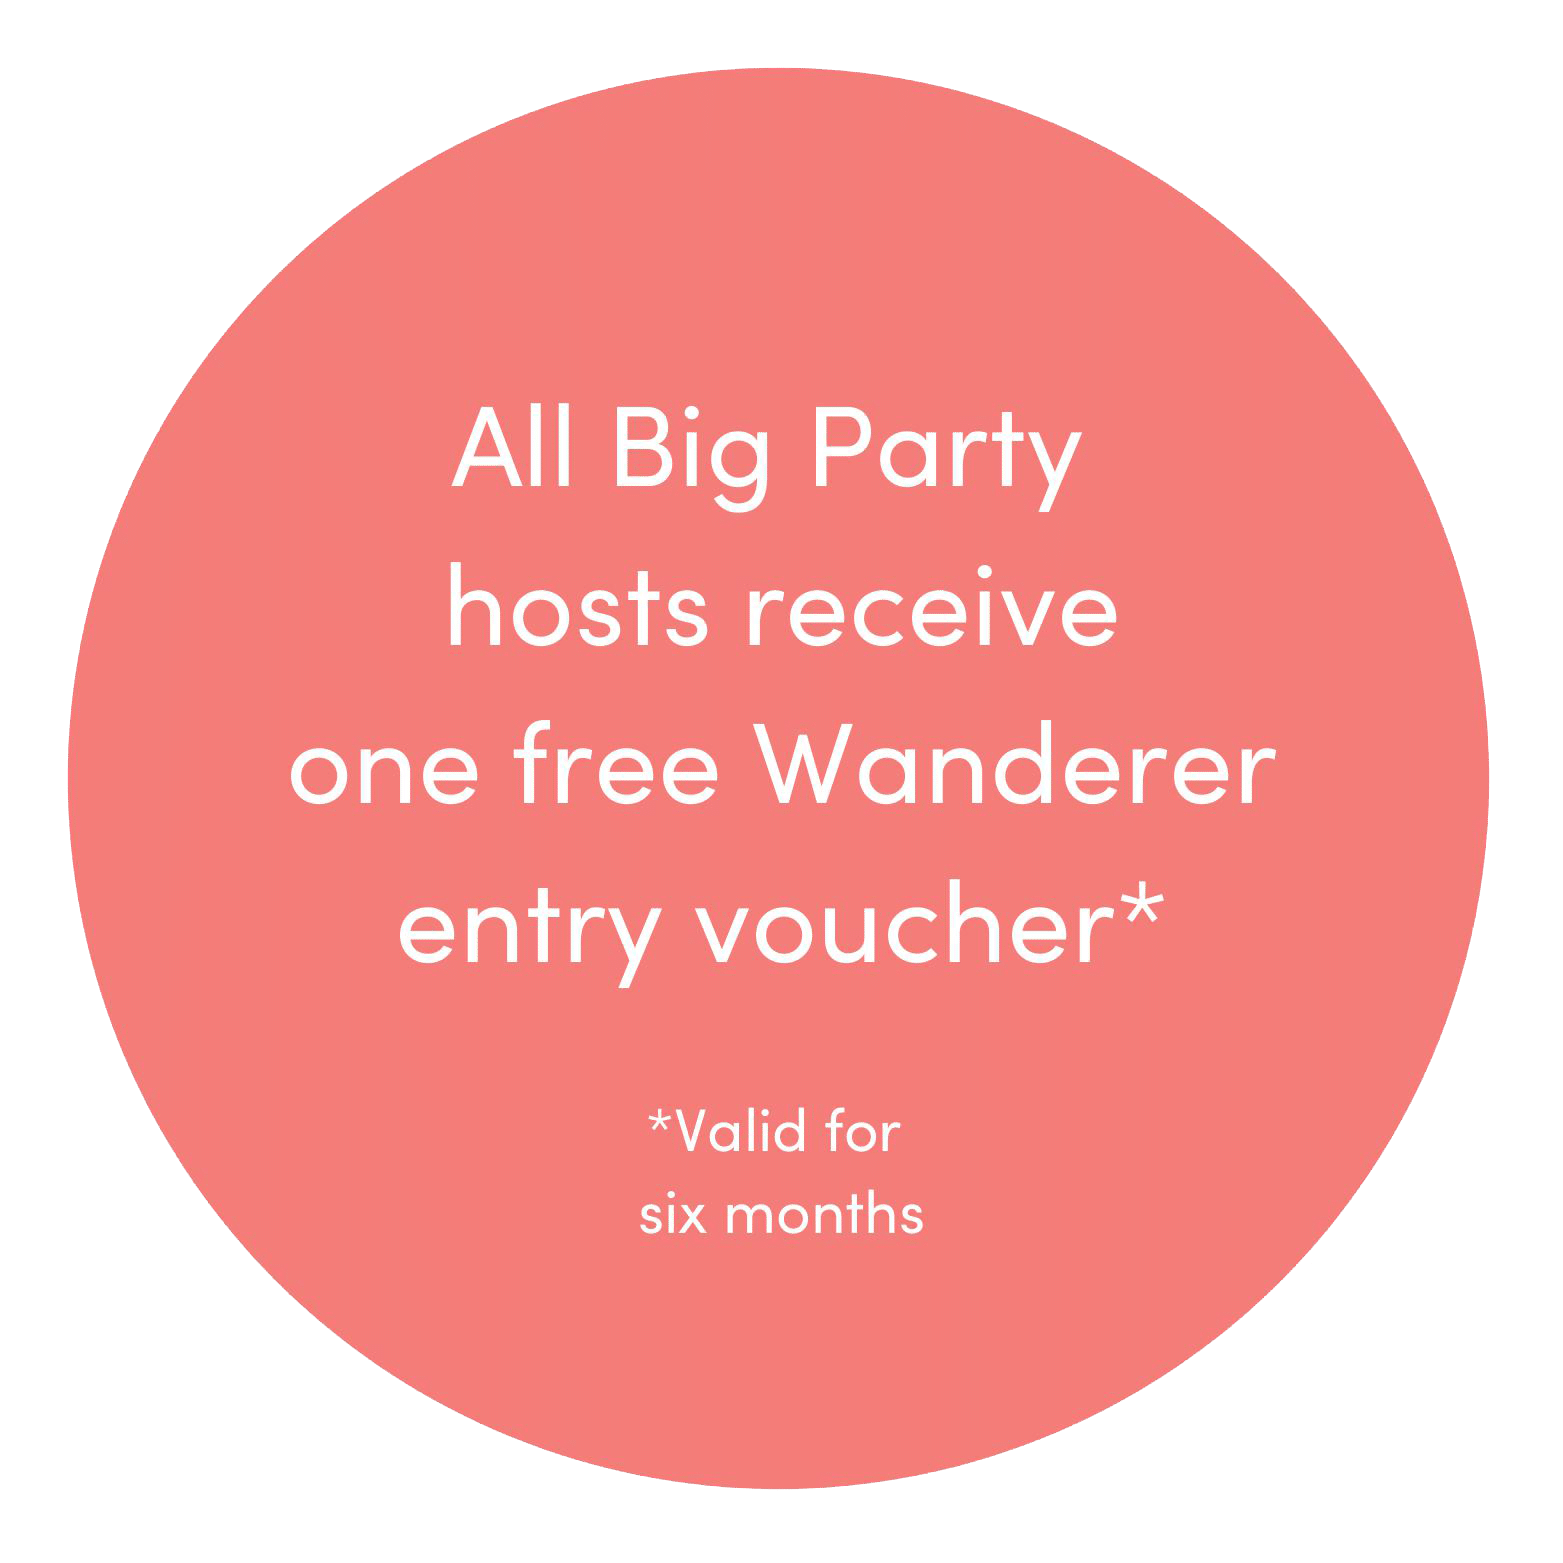 free-wanderer-voucher-party-hosts-little-land